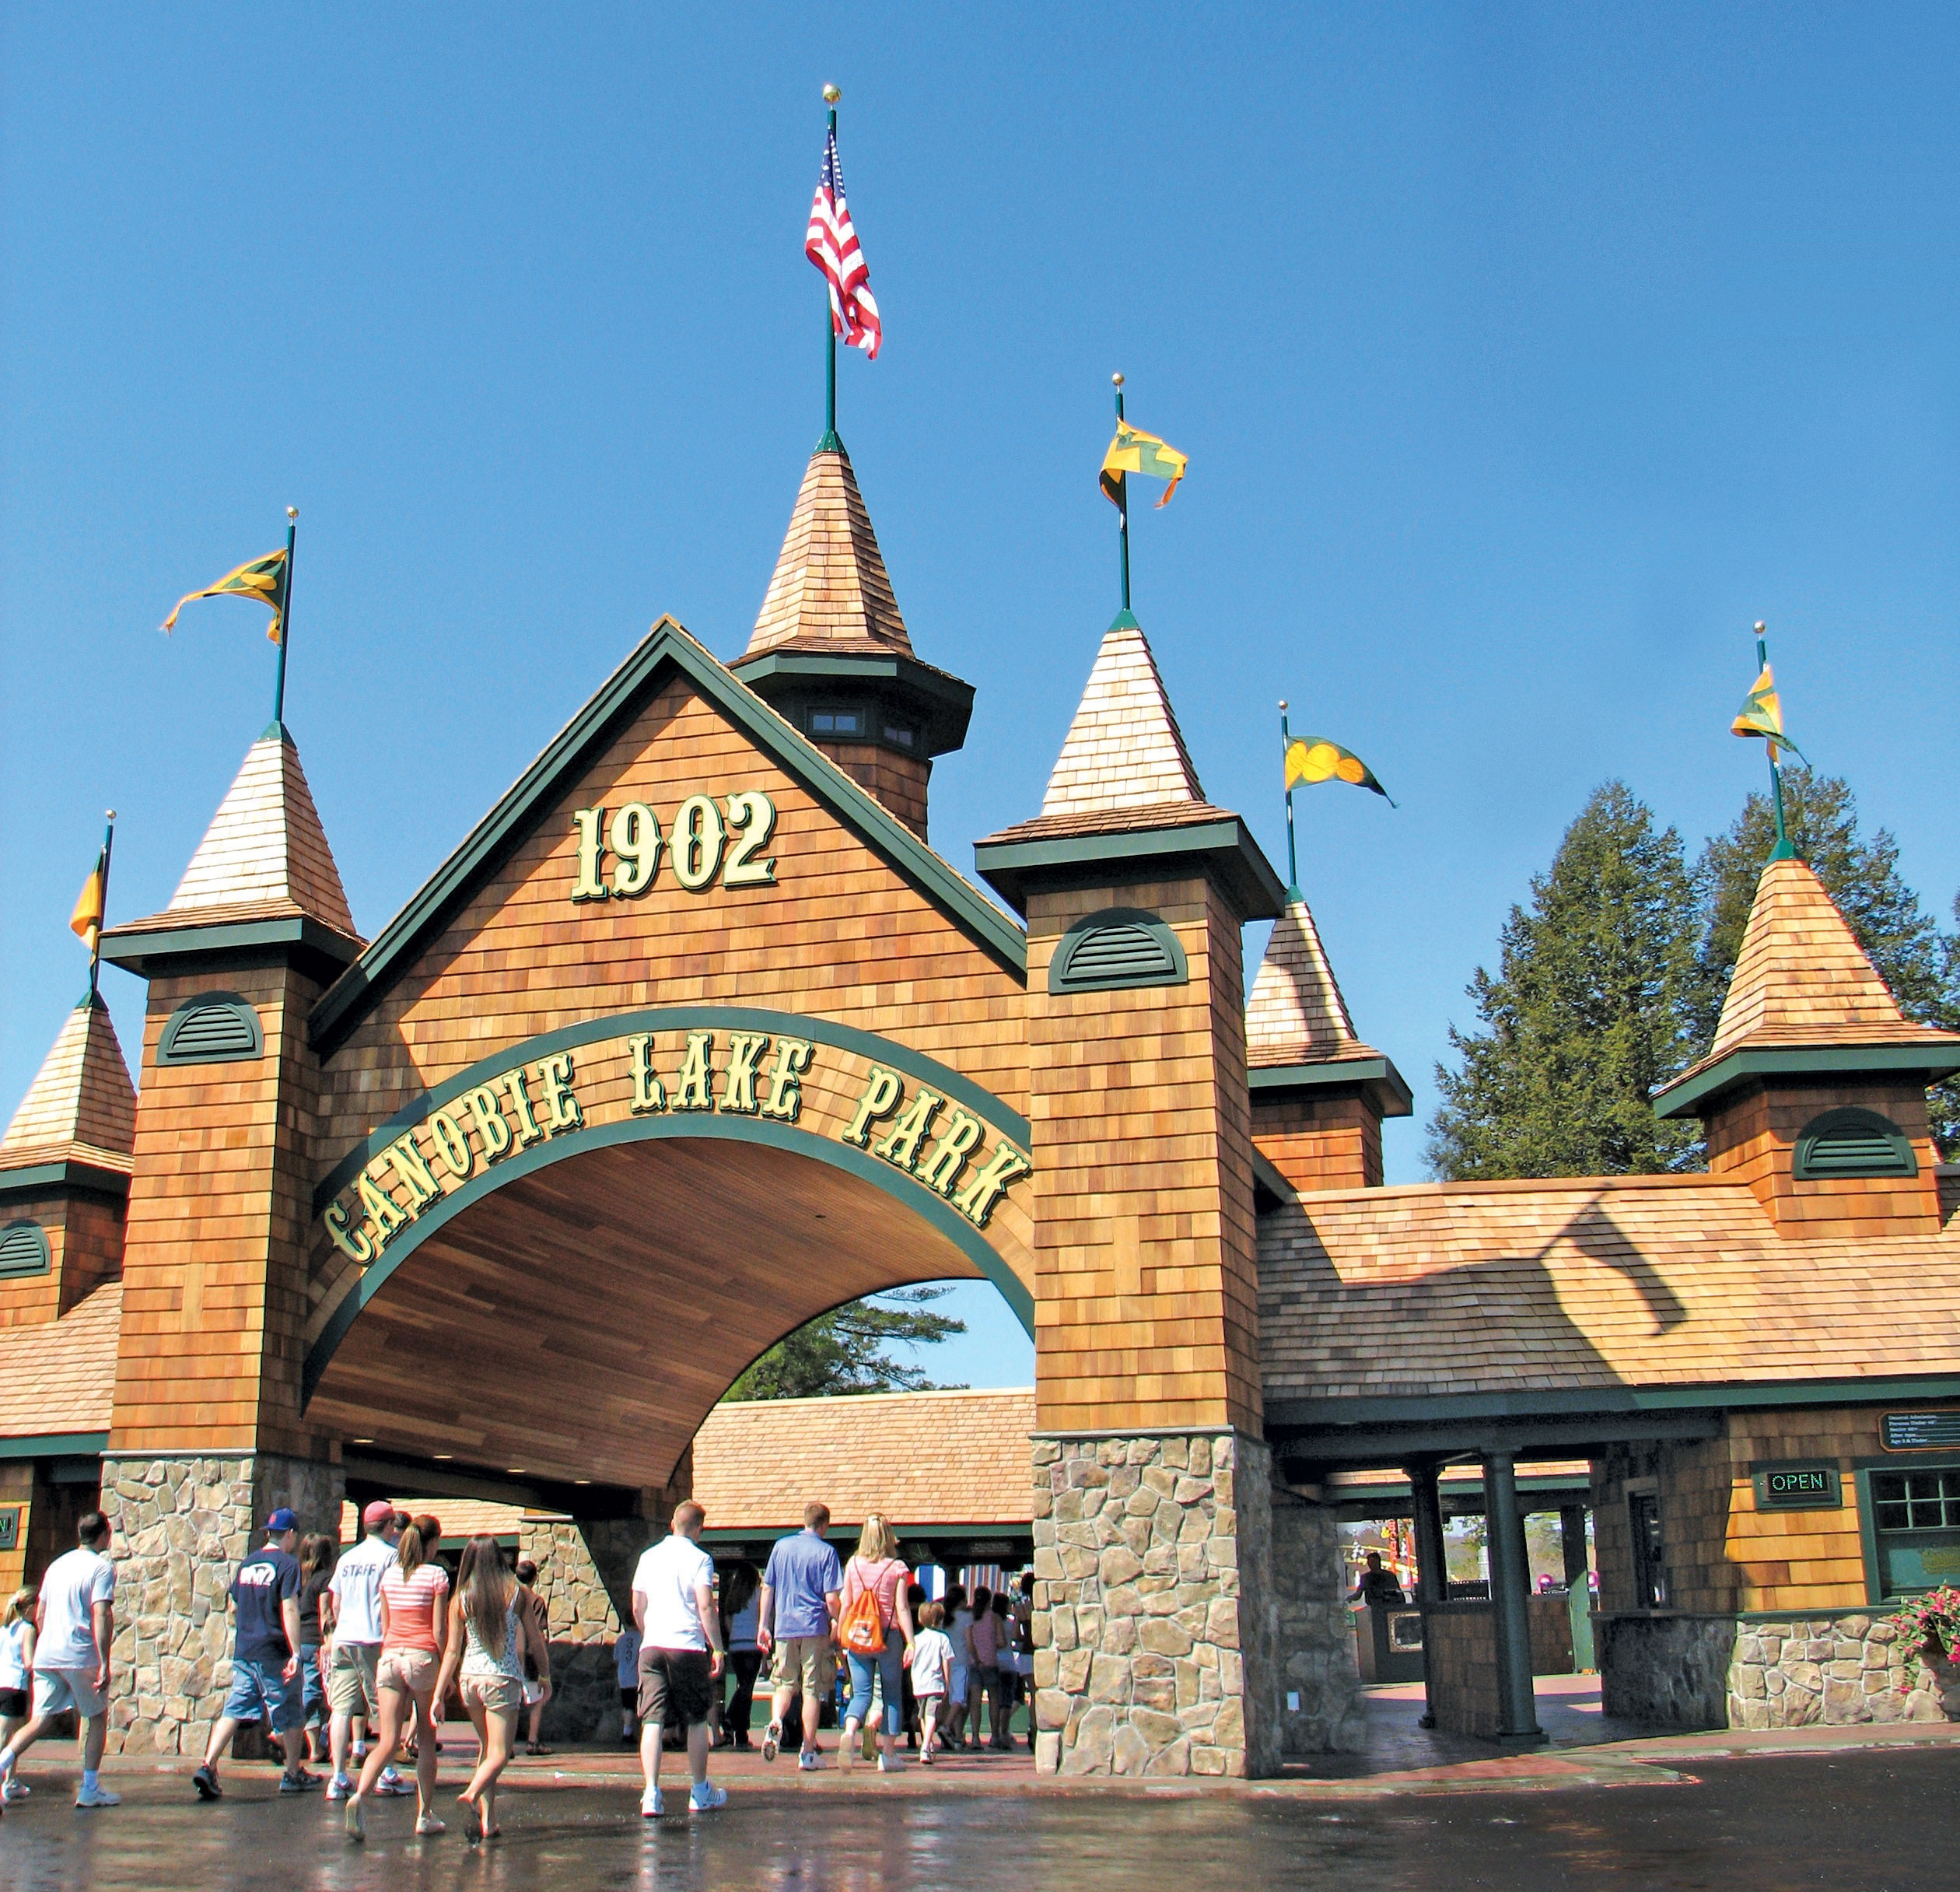 Canobie Lake Park   Nh.life, Your Guide To New Hampshire - Free Printable Coupons For Canobie Lake Park